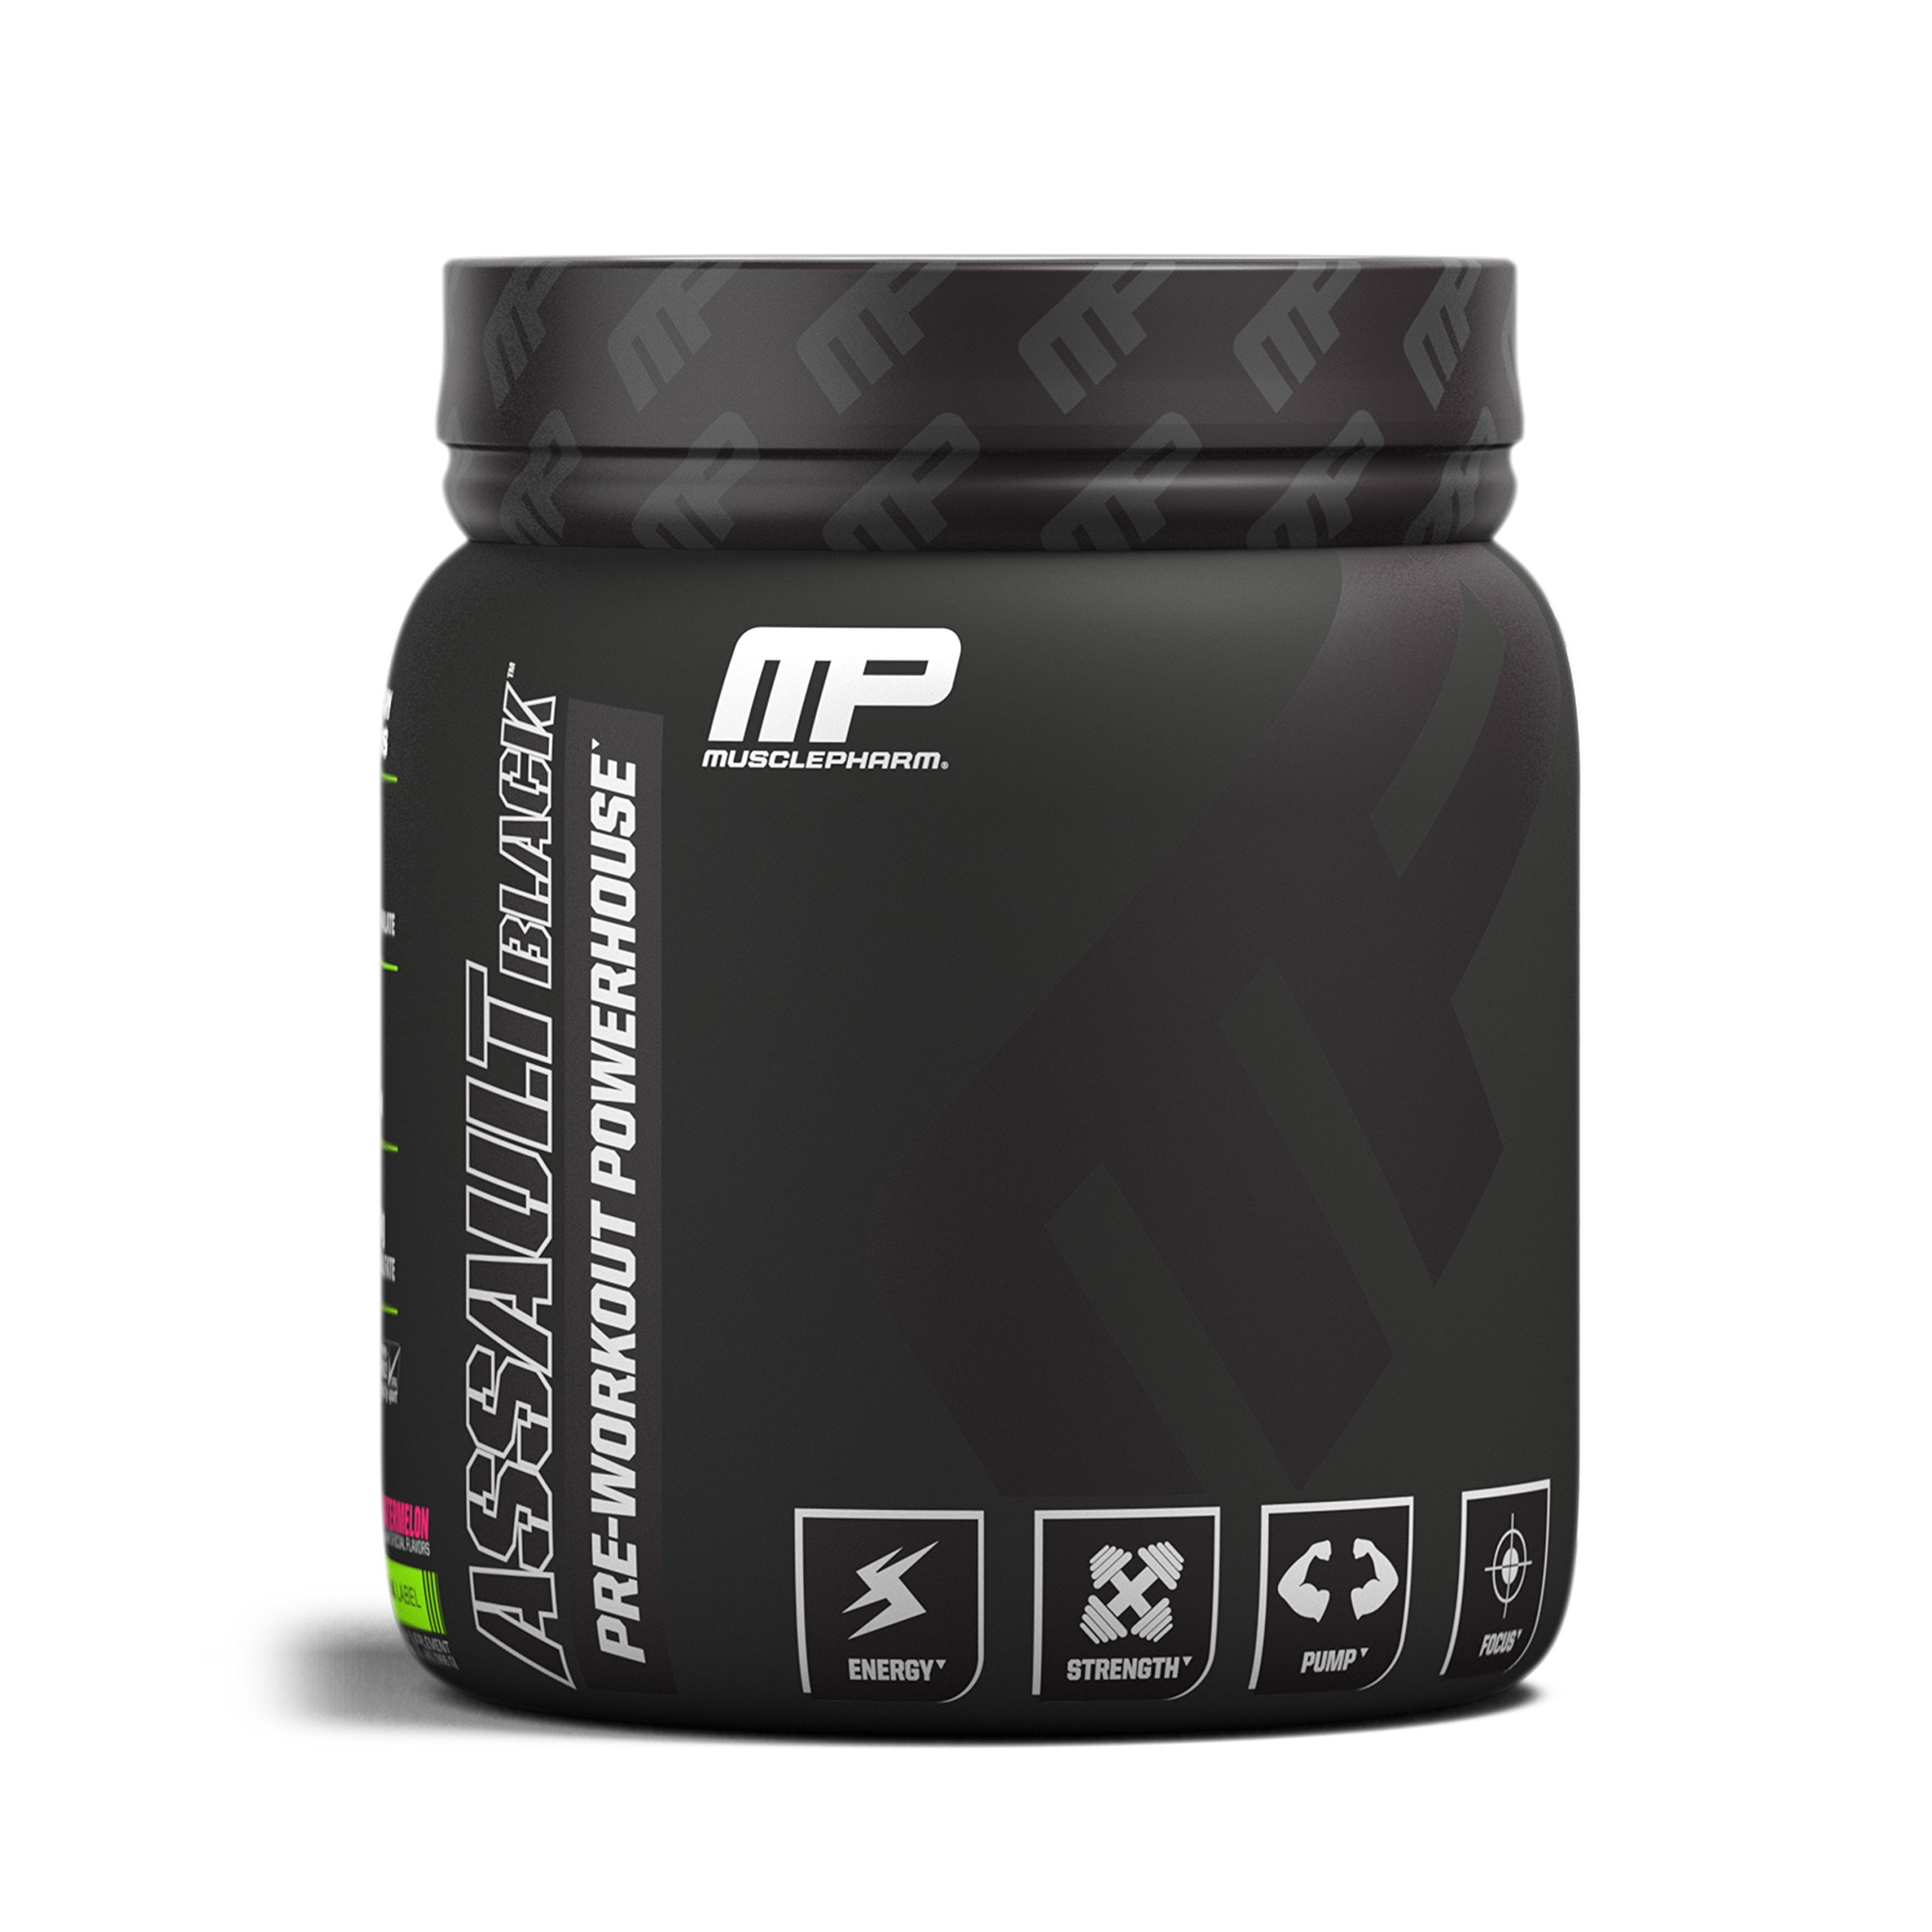 MusclePharm Assault Black Pre-Workout Supplement, Watermelon, 30 Servings by Muscle Pharm